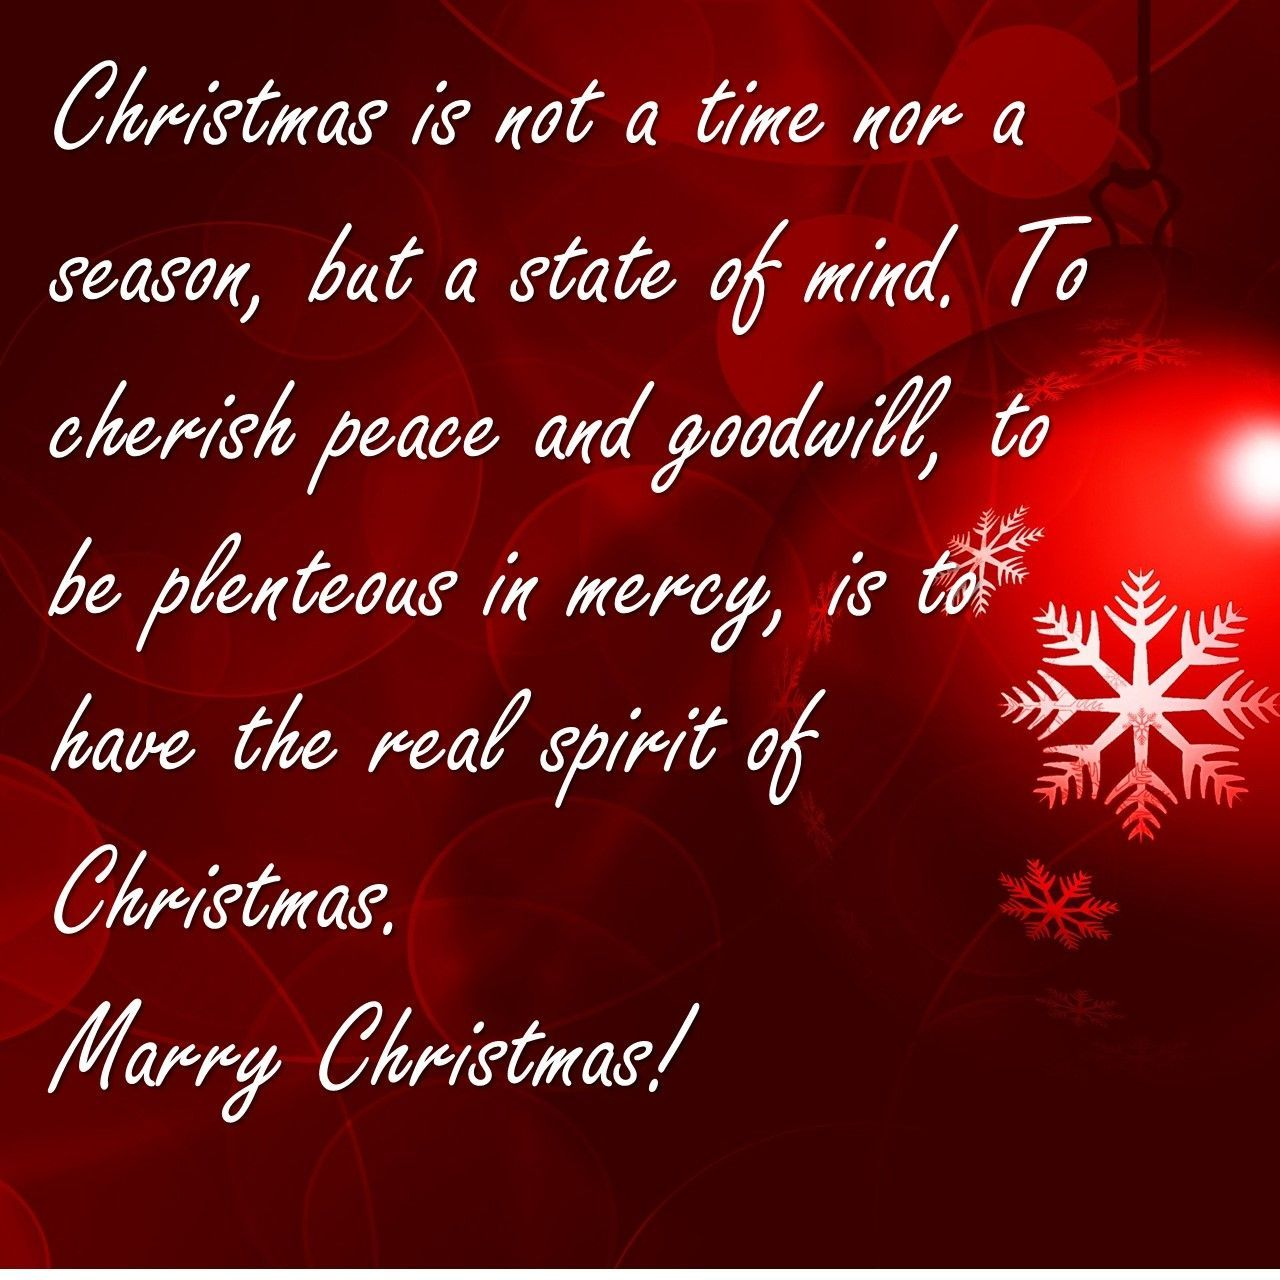 Christmas Messages Video Christmas Quotes Merry Christmas Quotes Christmas Card Writing